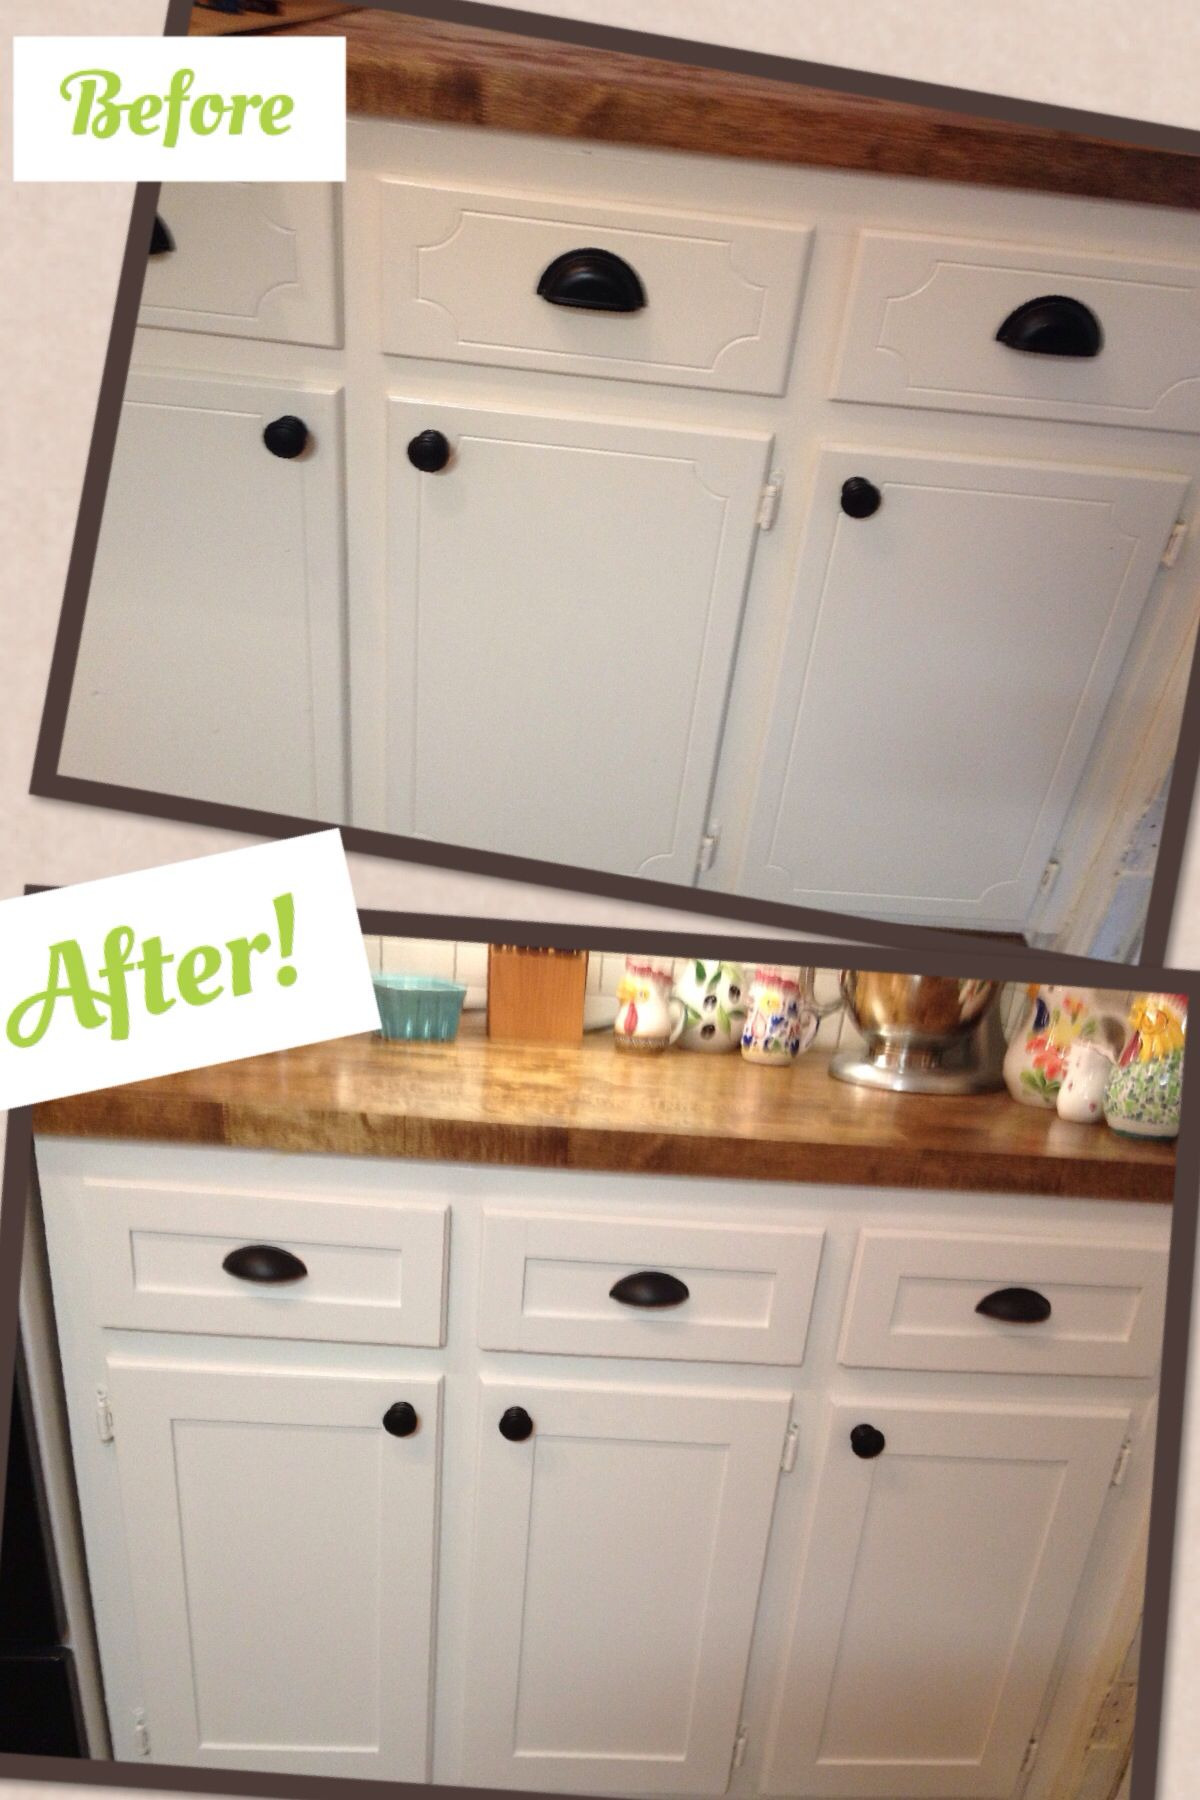 How to Replace Cabinet Doors Awesome Kitchen Cabinet Refacing Project Diy Shaker Trim Done